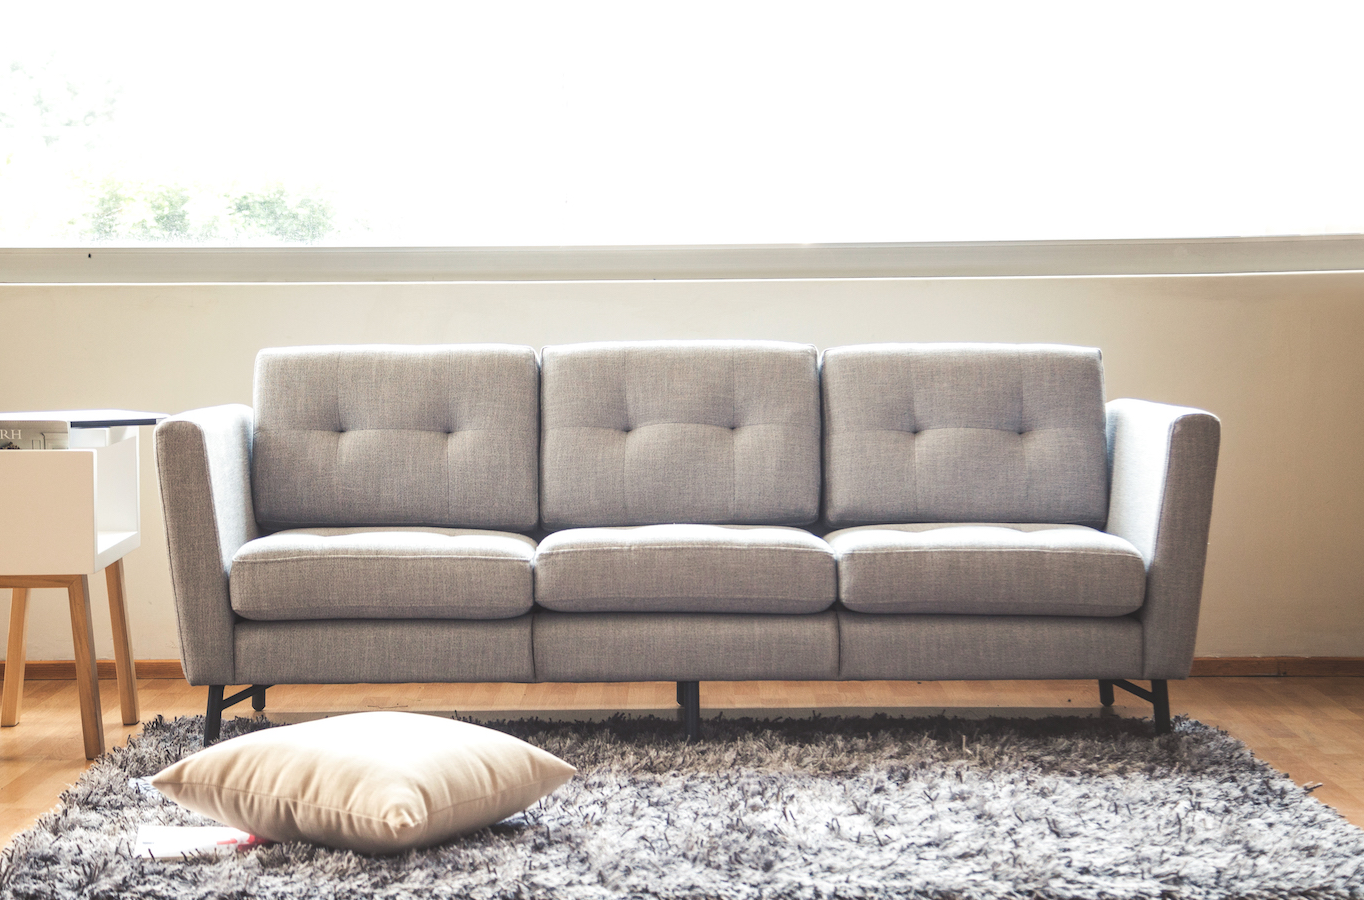 Burrow Wants To Bring Casper S Mattress Concept To Couches Techcrunch